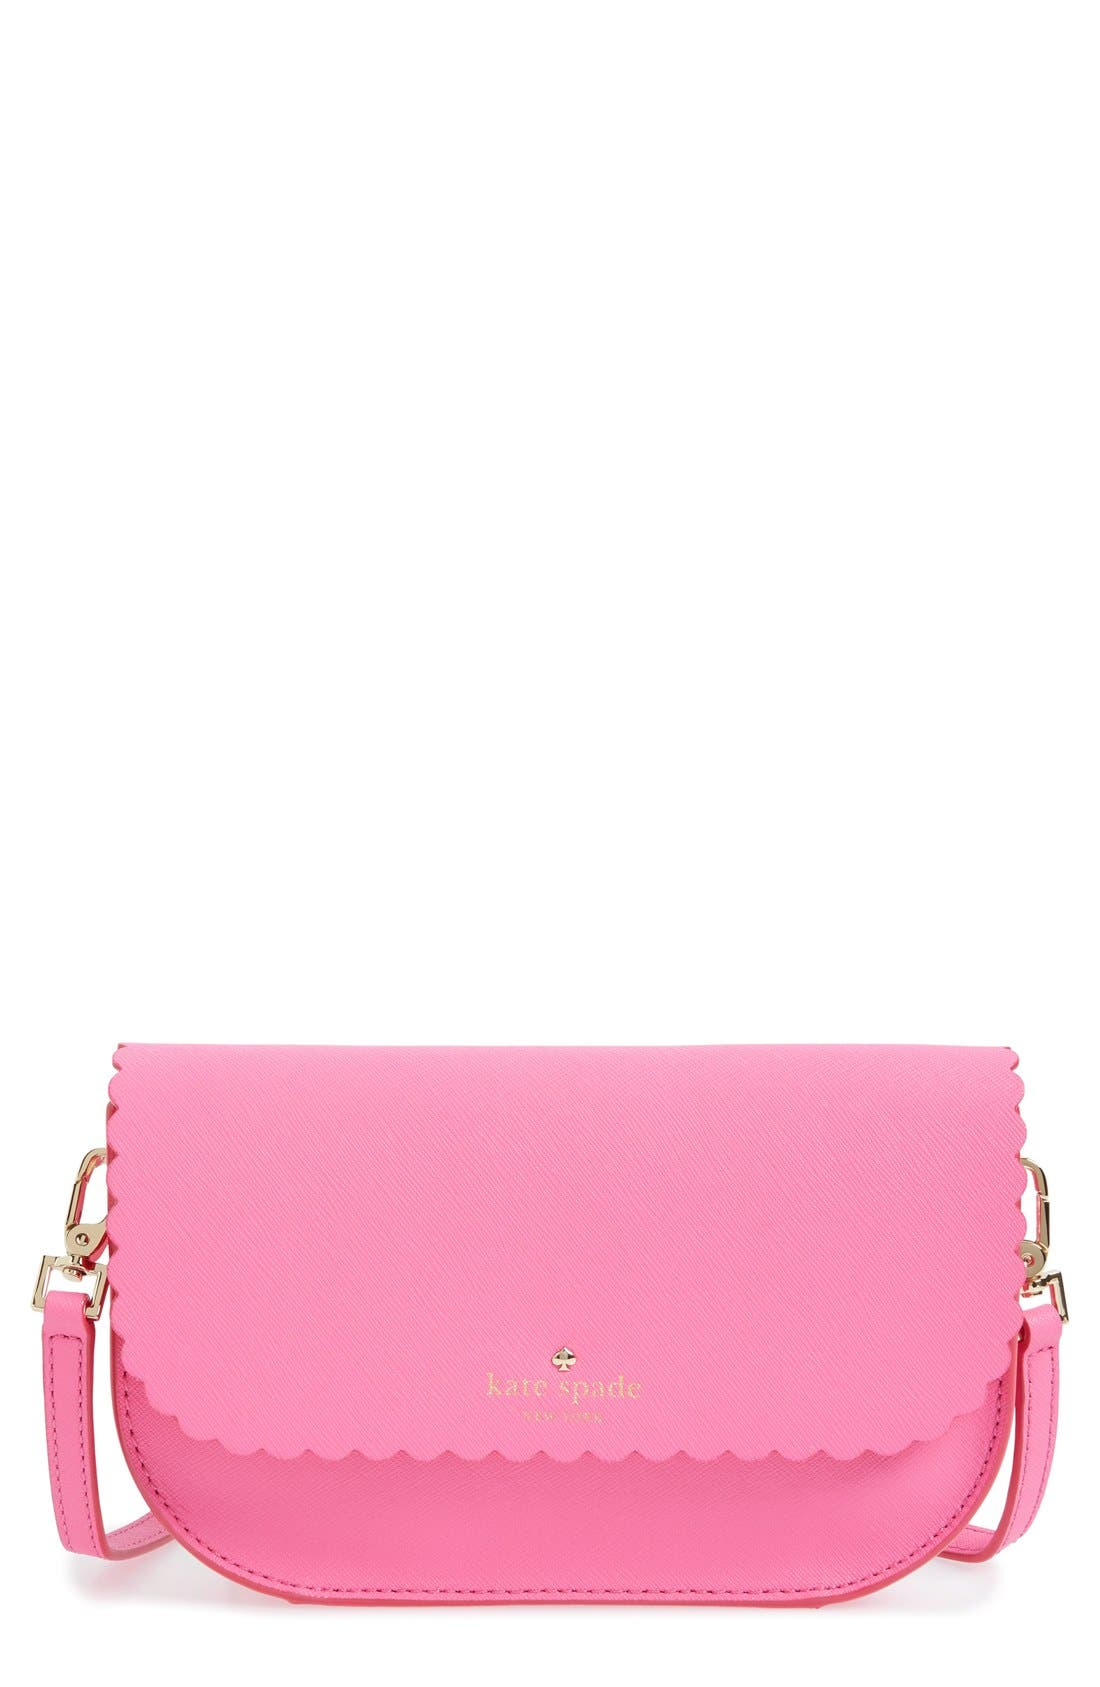 Alternate Image 1 Selected - kate spade new york 'cape drive - jettie' scalloped leather crossbody bag